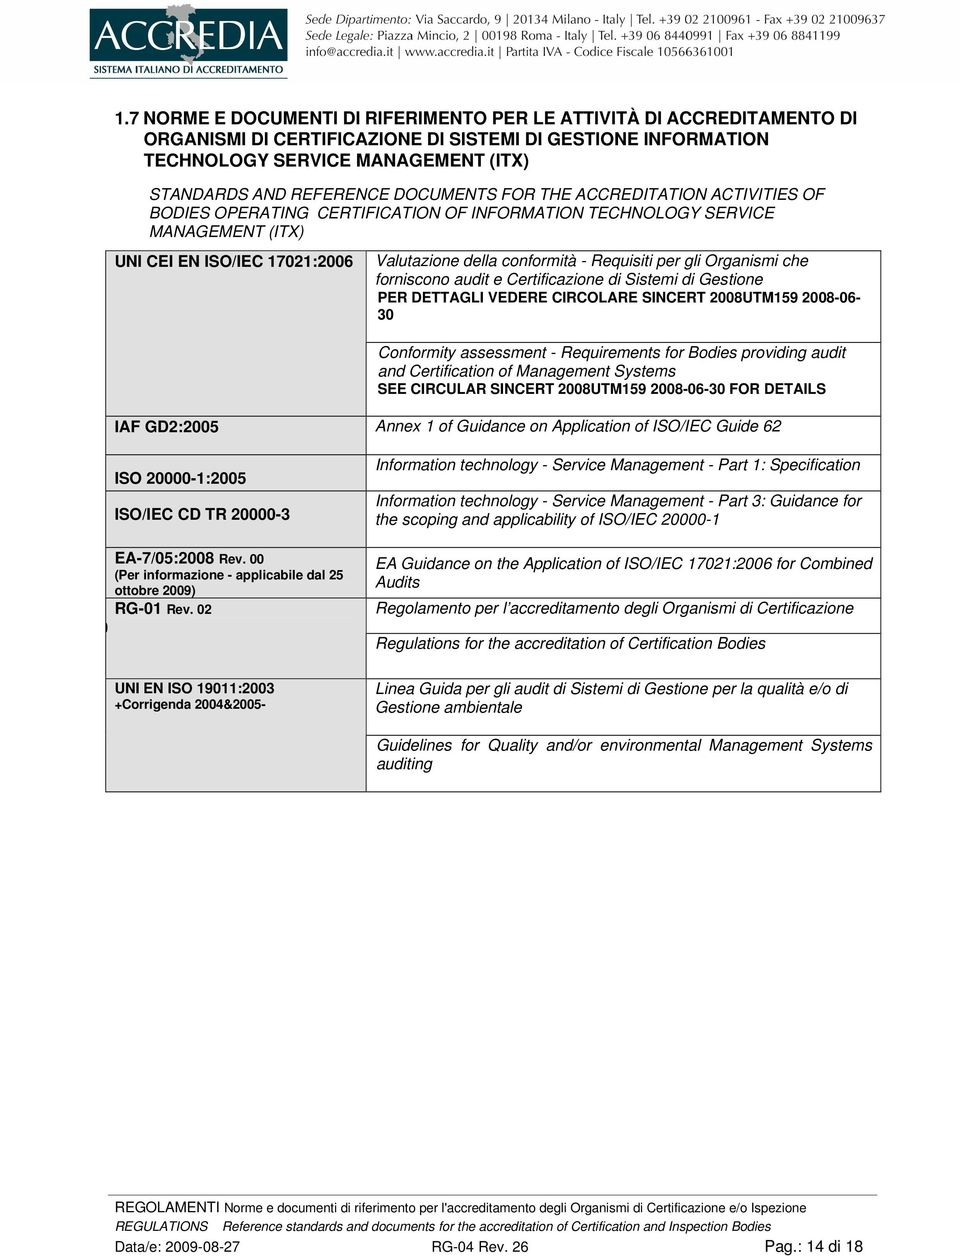 Sistemi di Gestione PER DETTAGLI VEDERE CIRCOLARE SINCERT 2008UTM159 2008-06- 30 Conformity assessment - Requirements for Bodies providing audit and Certification of Management Systems SEE CIRCULAR